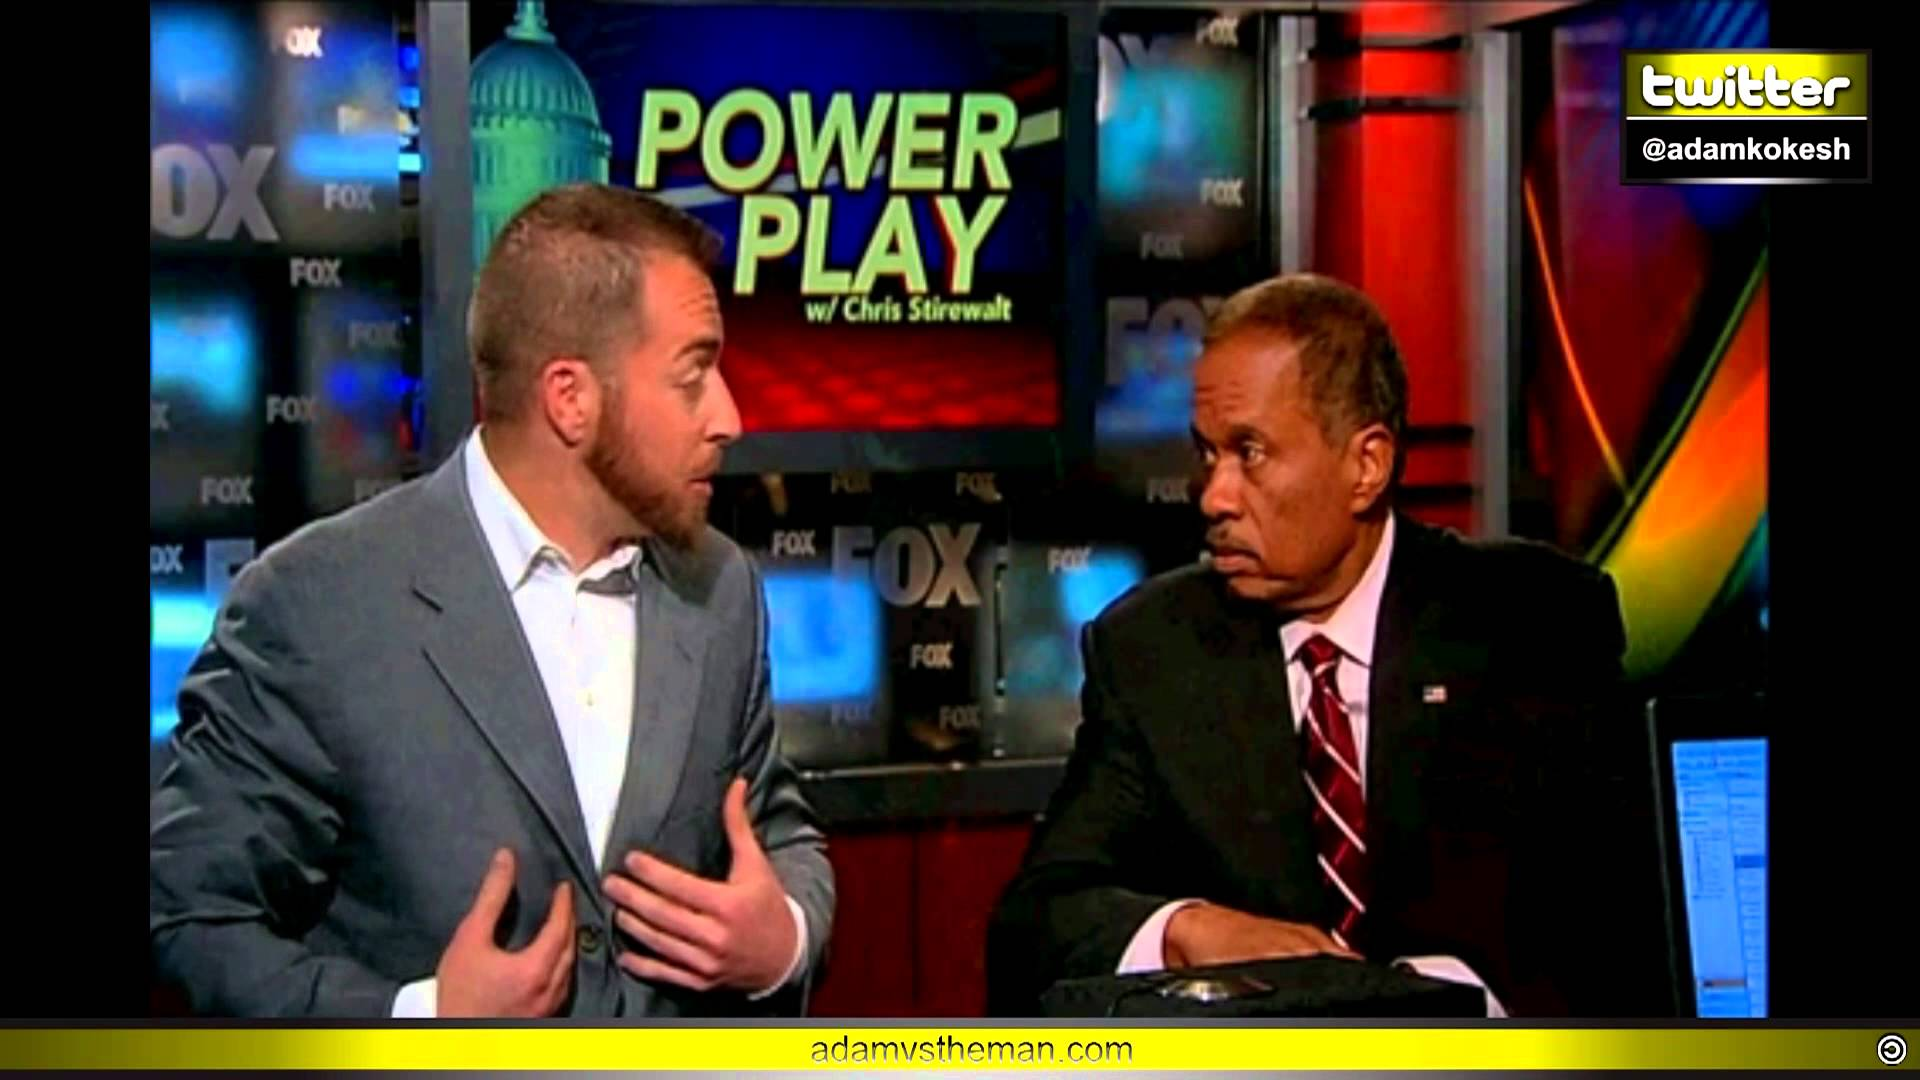 FOX News 131705 : DC will never be the same after Adam Kokesh